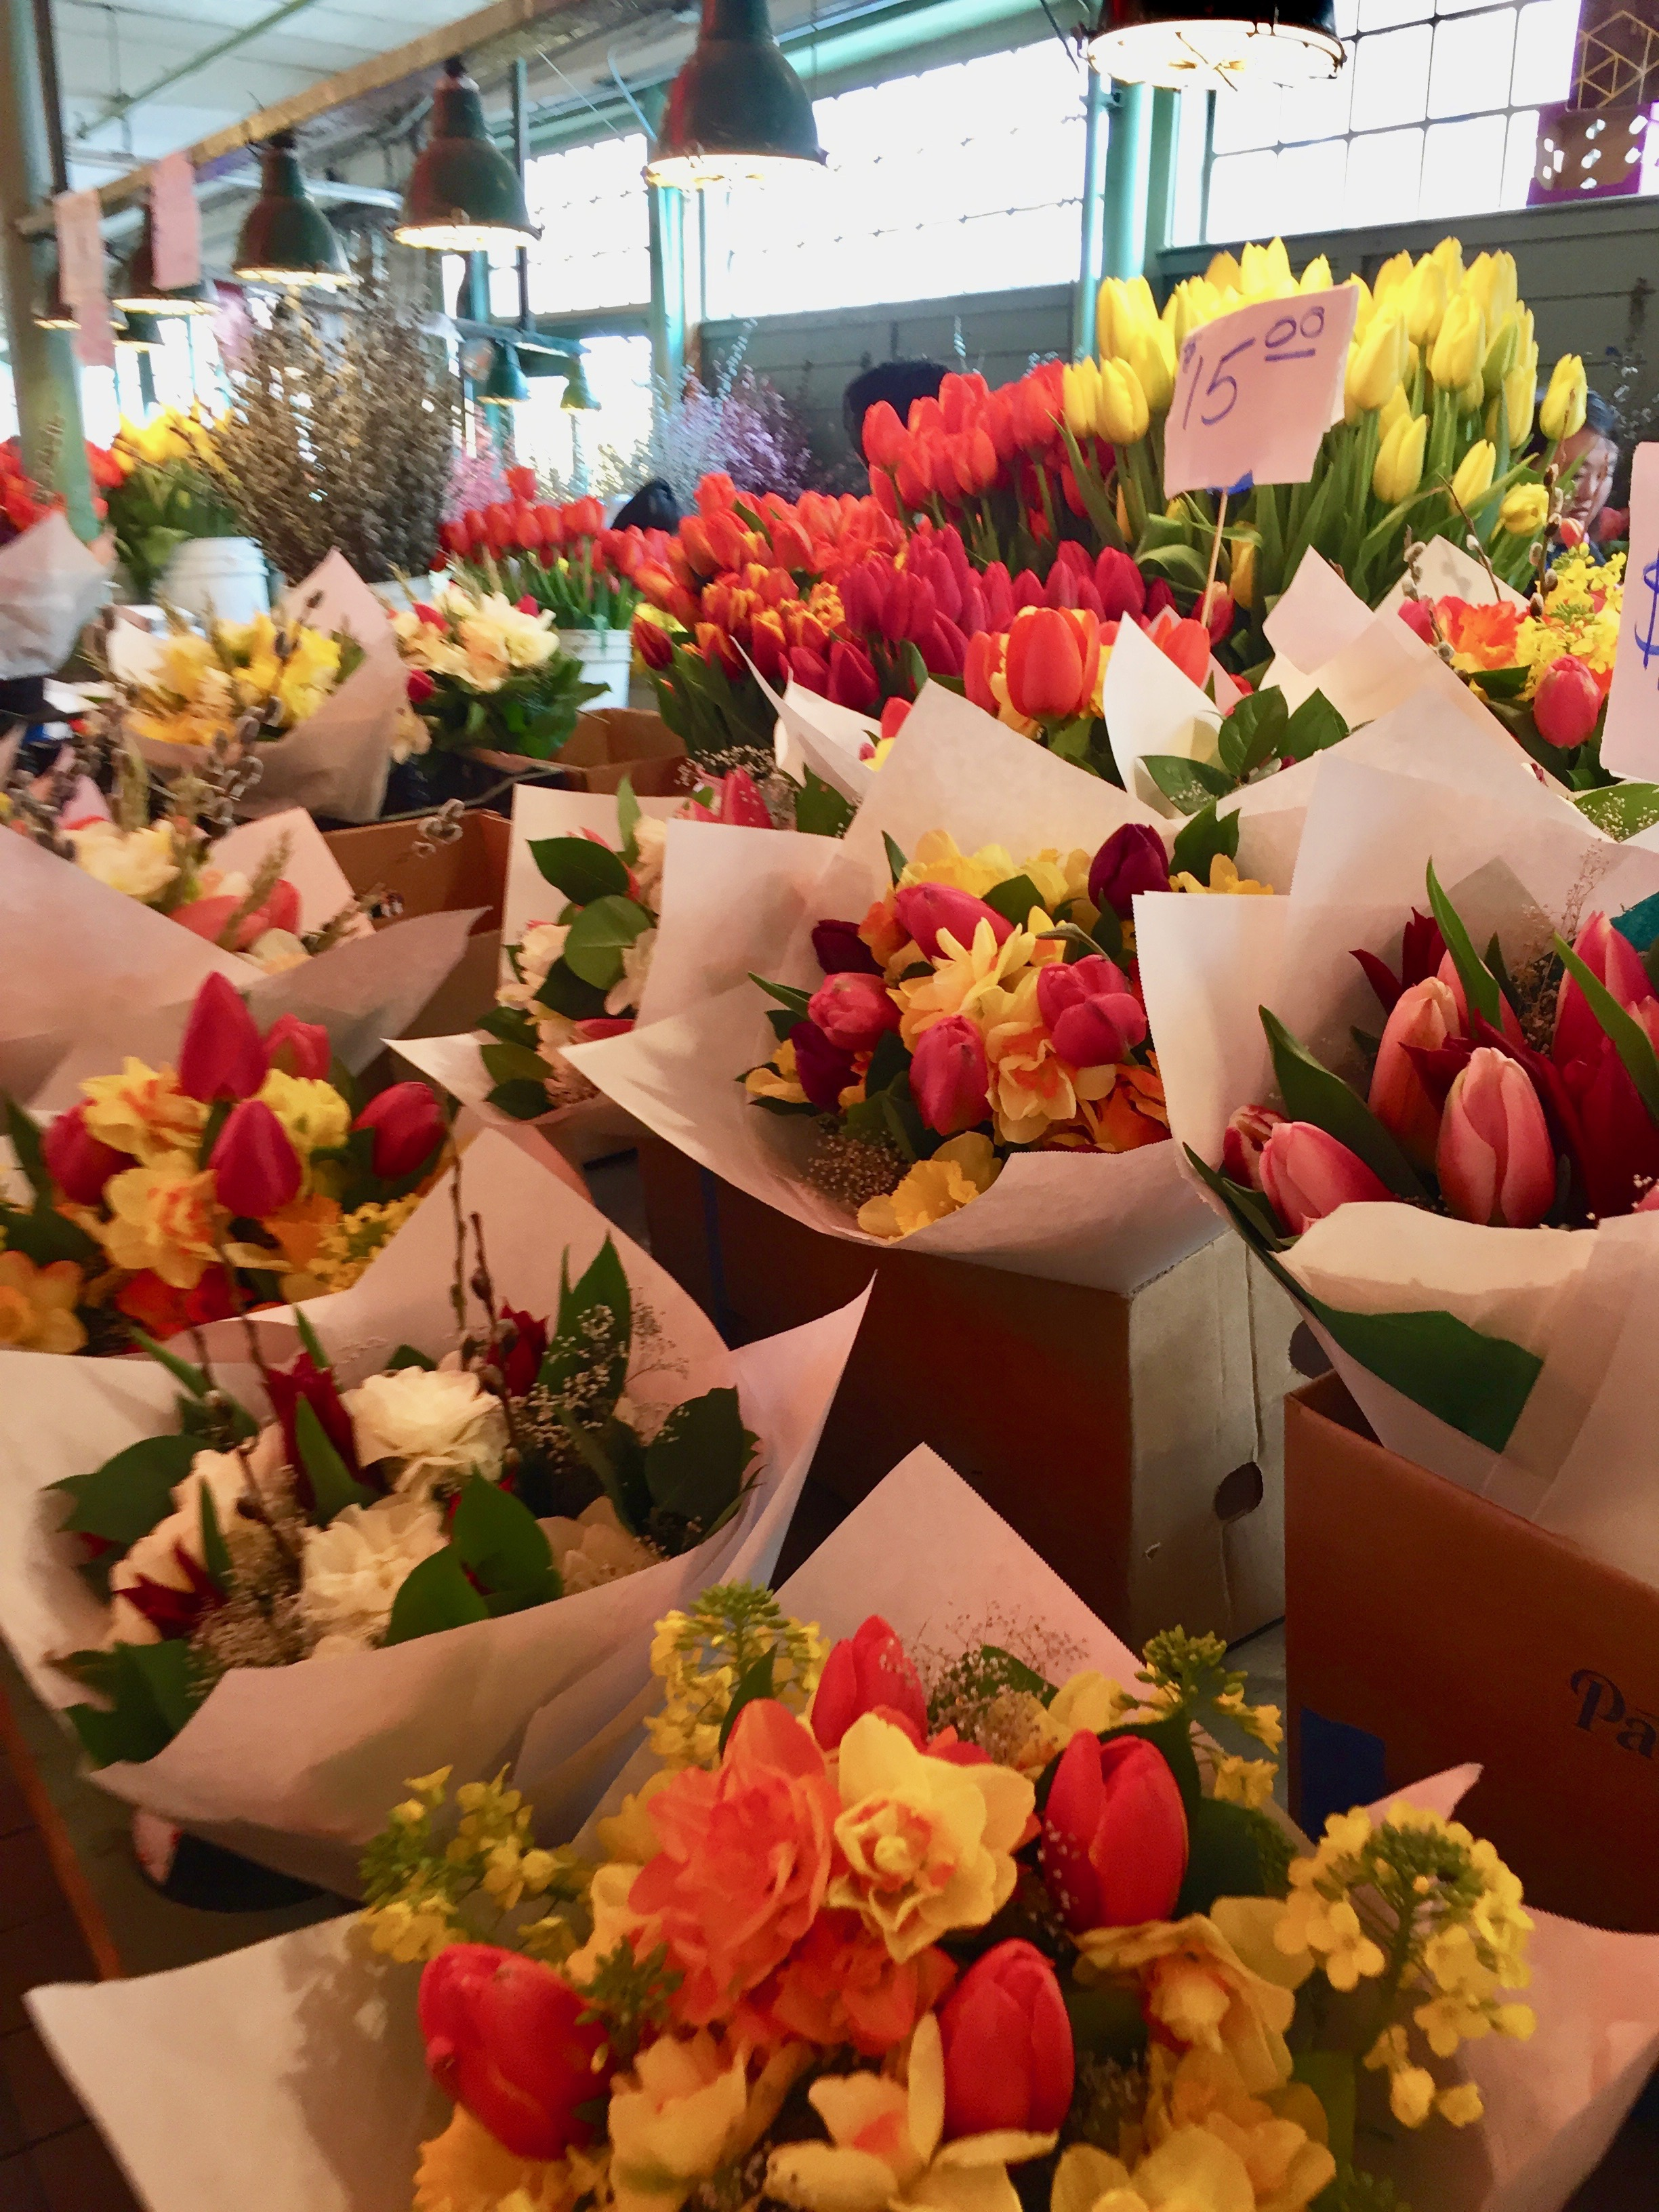 Pike Place always has the prettiest and cheapest flowers.